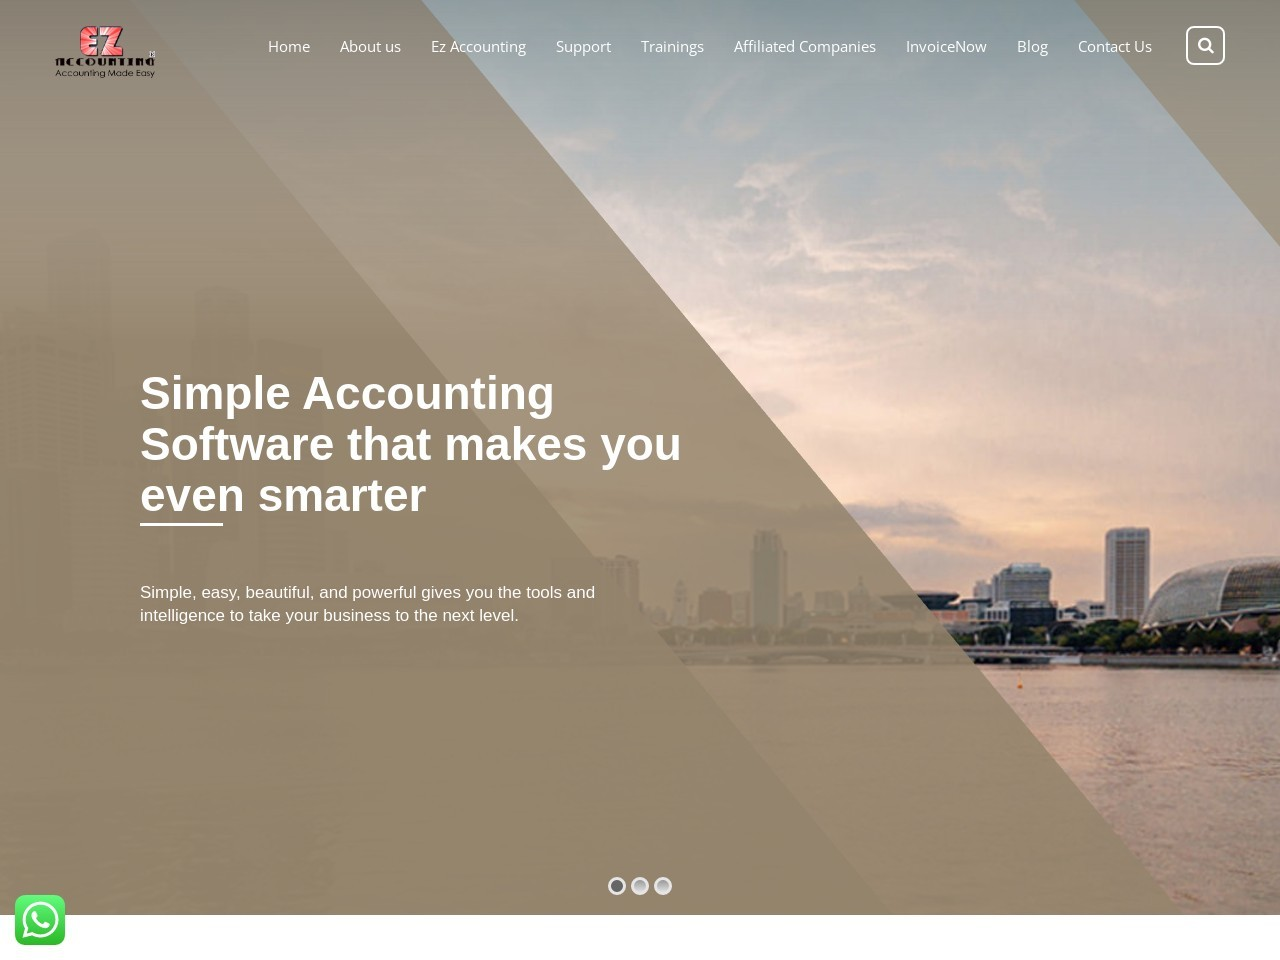 Best accounting software Singapore | Small Business Accounting